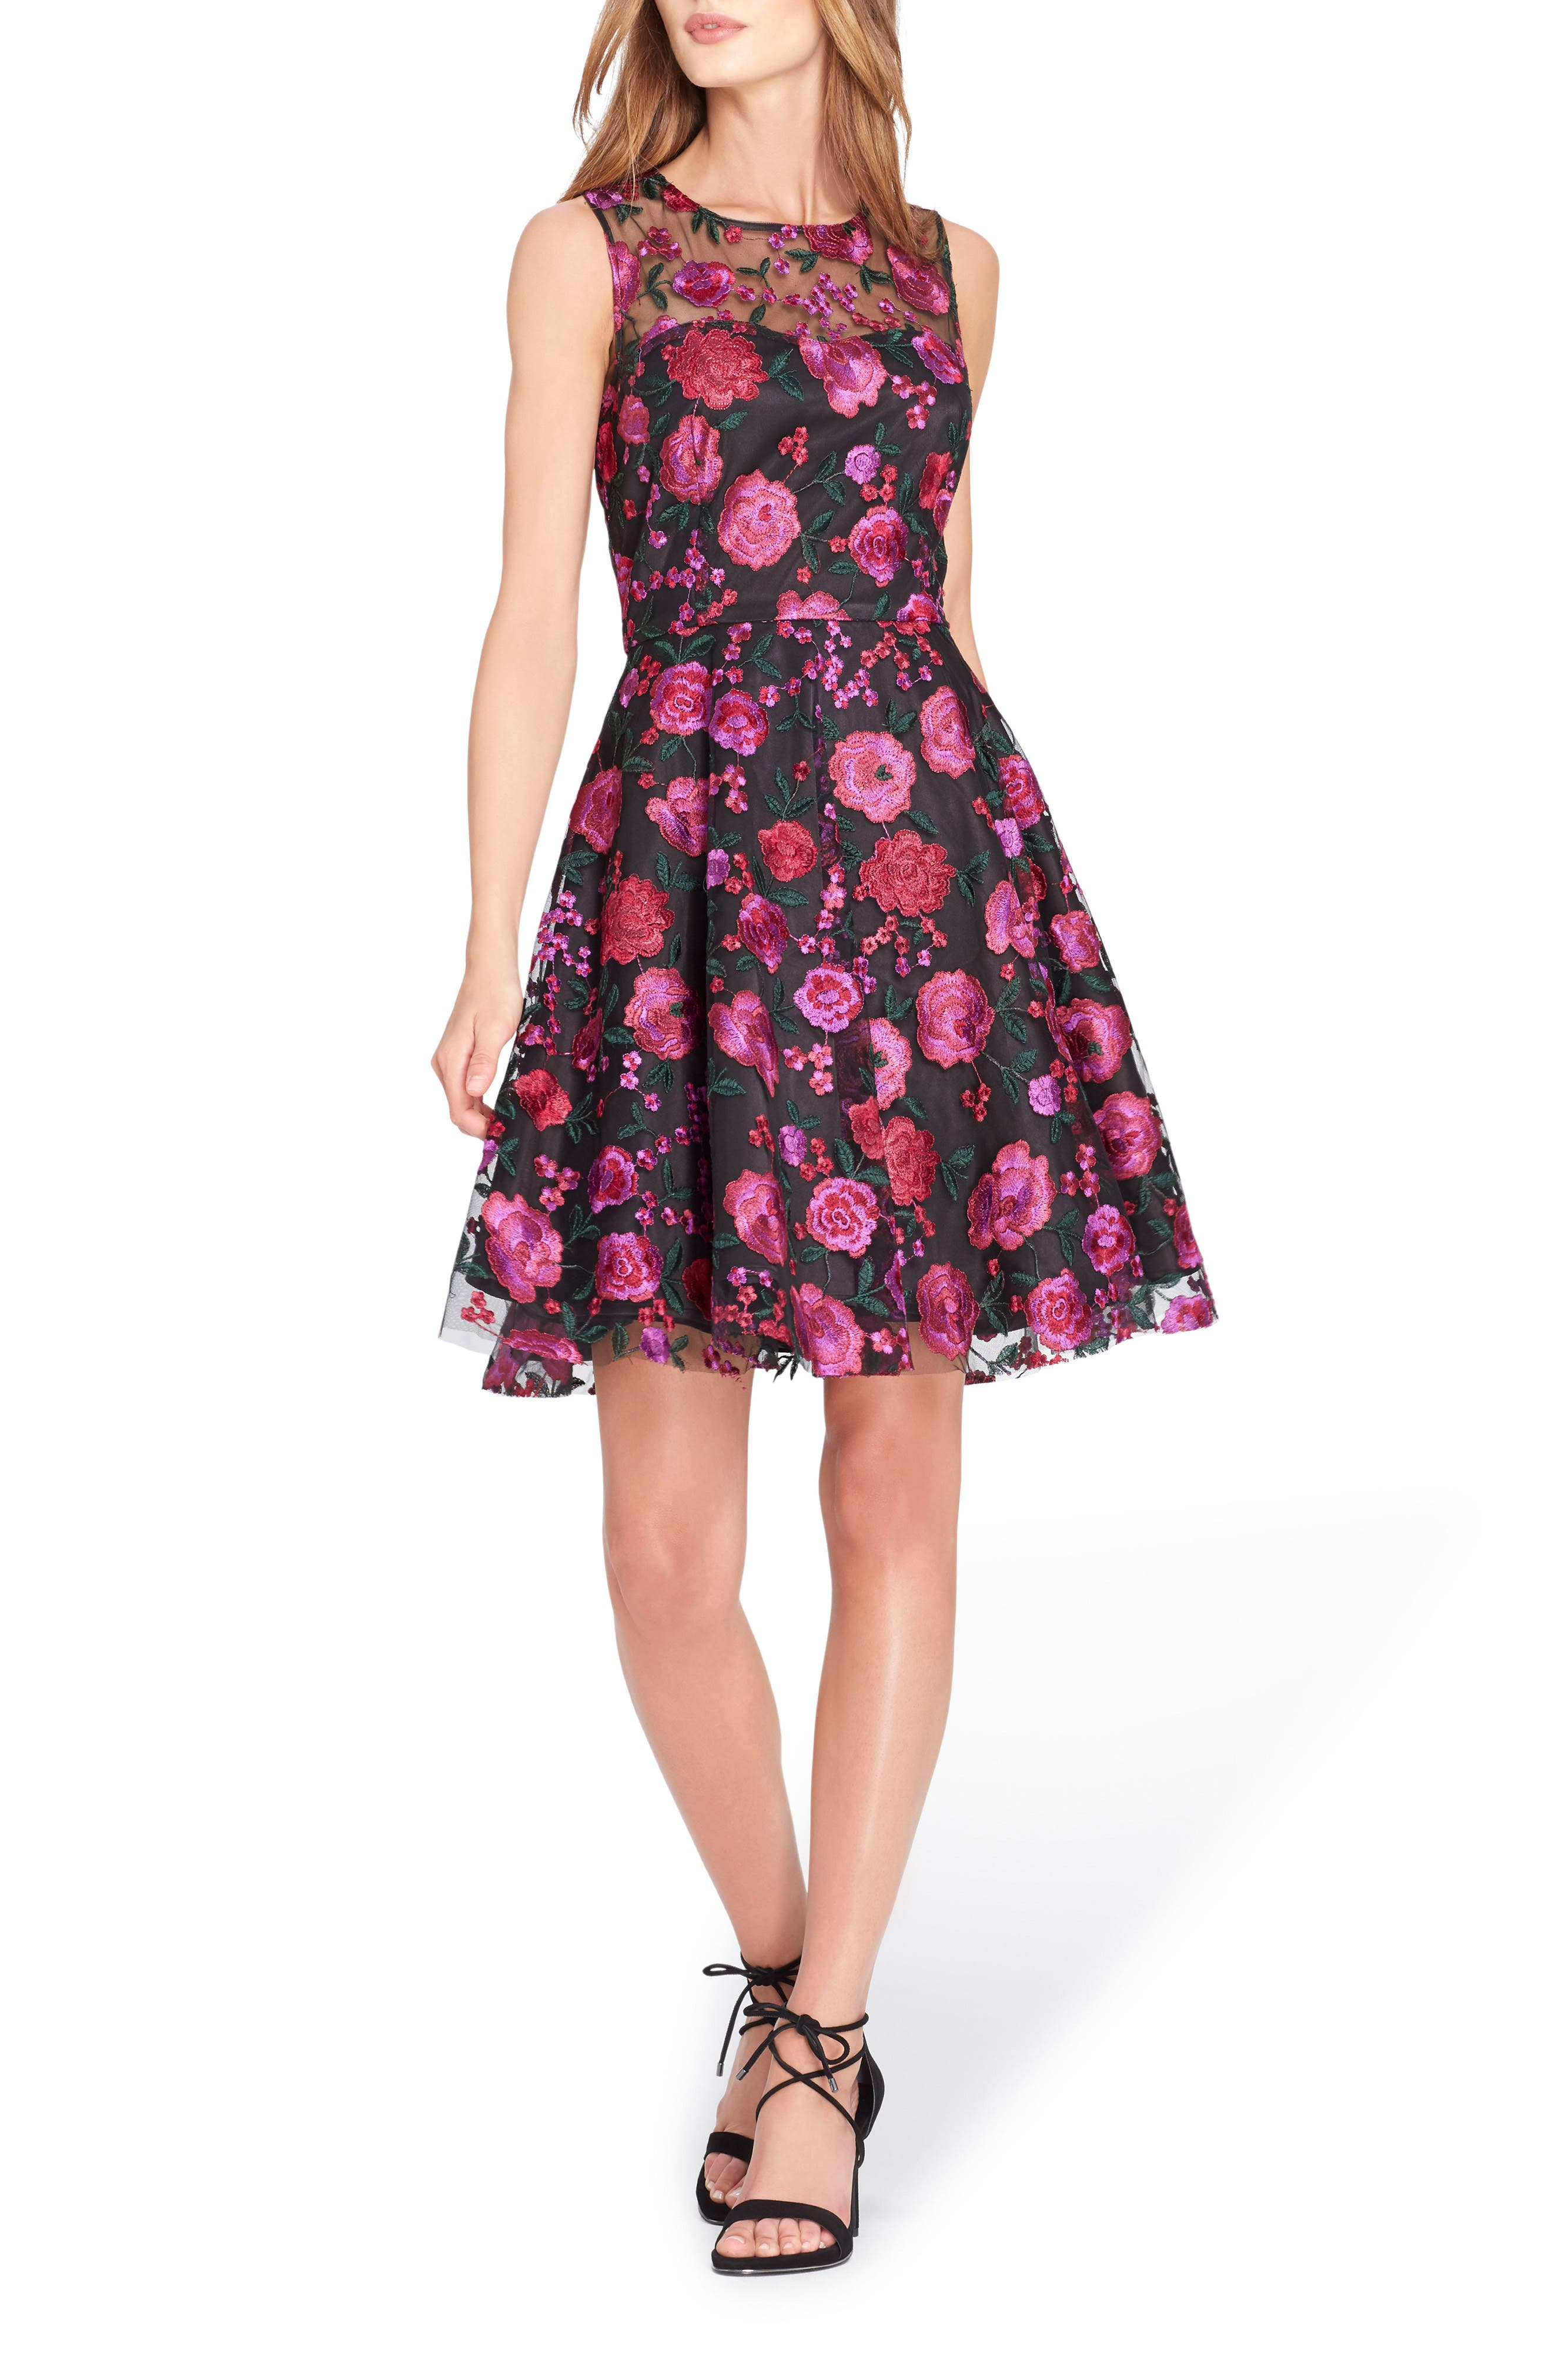 Alternate Image 1 Selected - Tahari Embroidered Fit & Flare Dress (Regular & Petite)